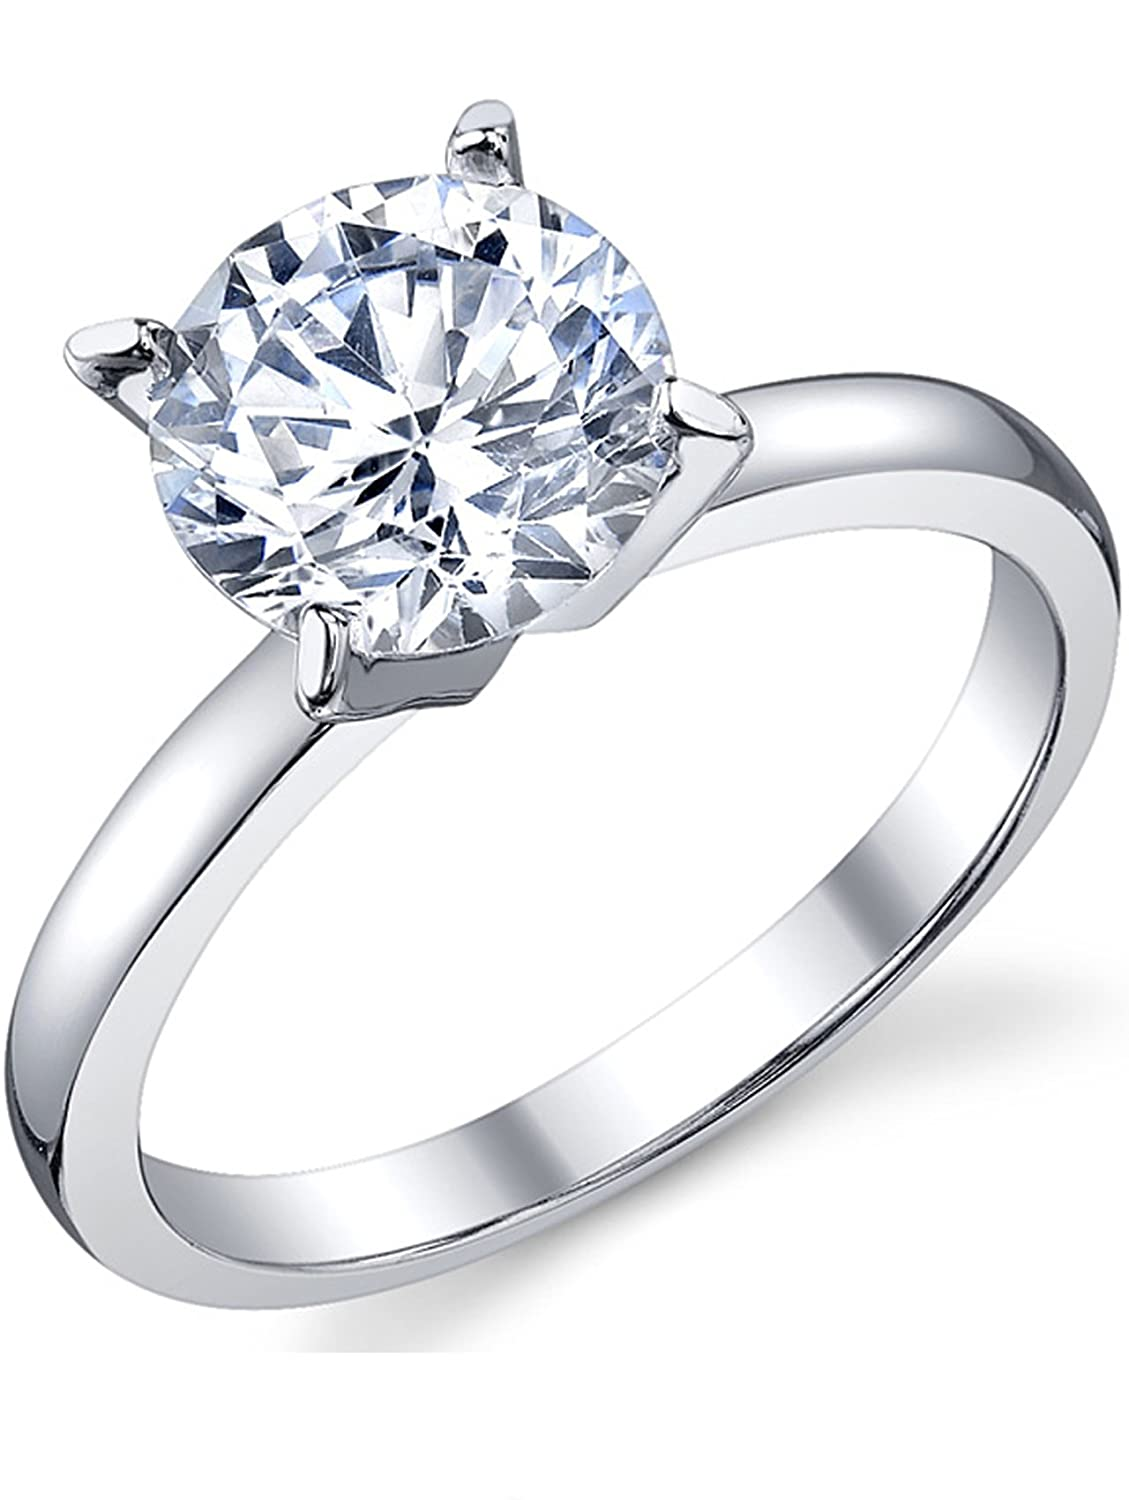 2 Carat Round Brilliant Cubic Zirconia CZ Sterling Silver 925 Wedding Engagement Ring Sizes 4 to 11